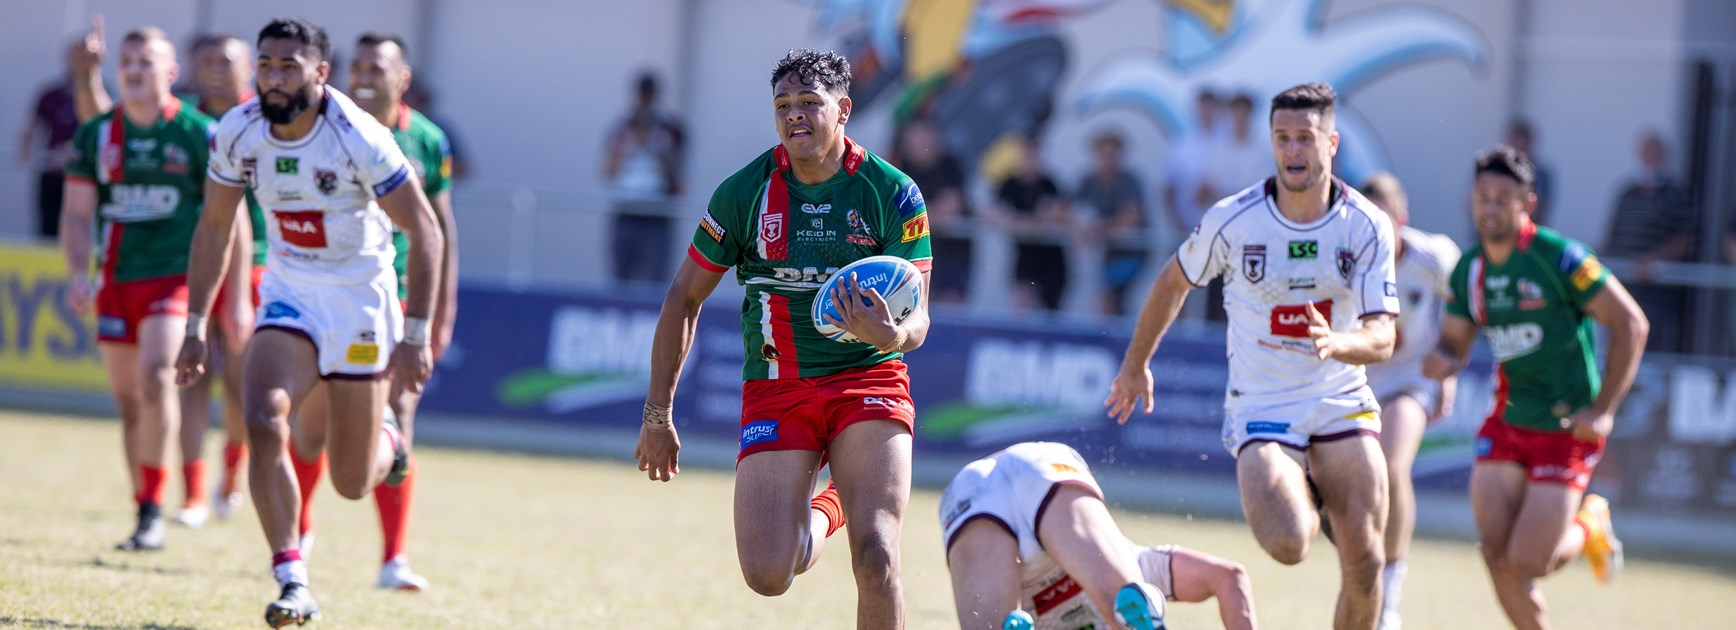 Wynnum Manly overcome the Bears to progress in finals